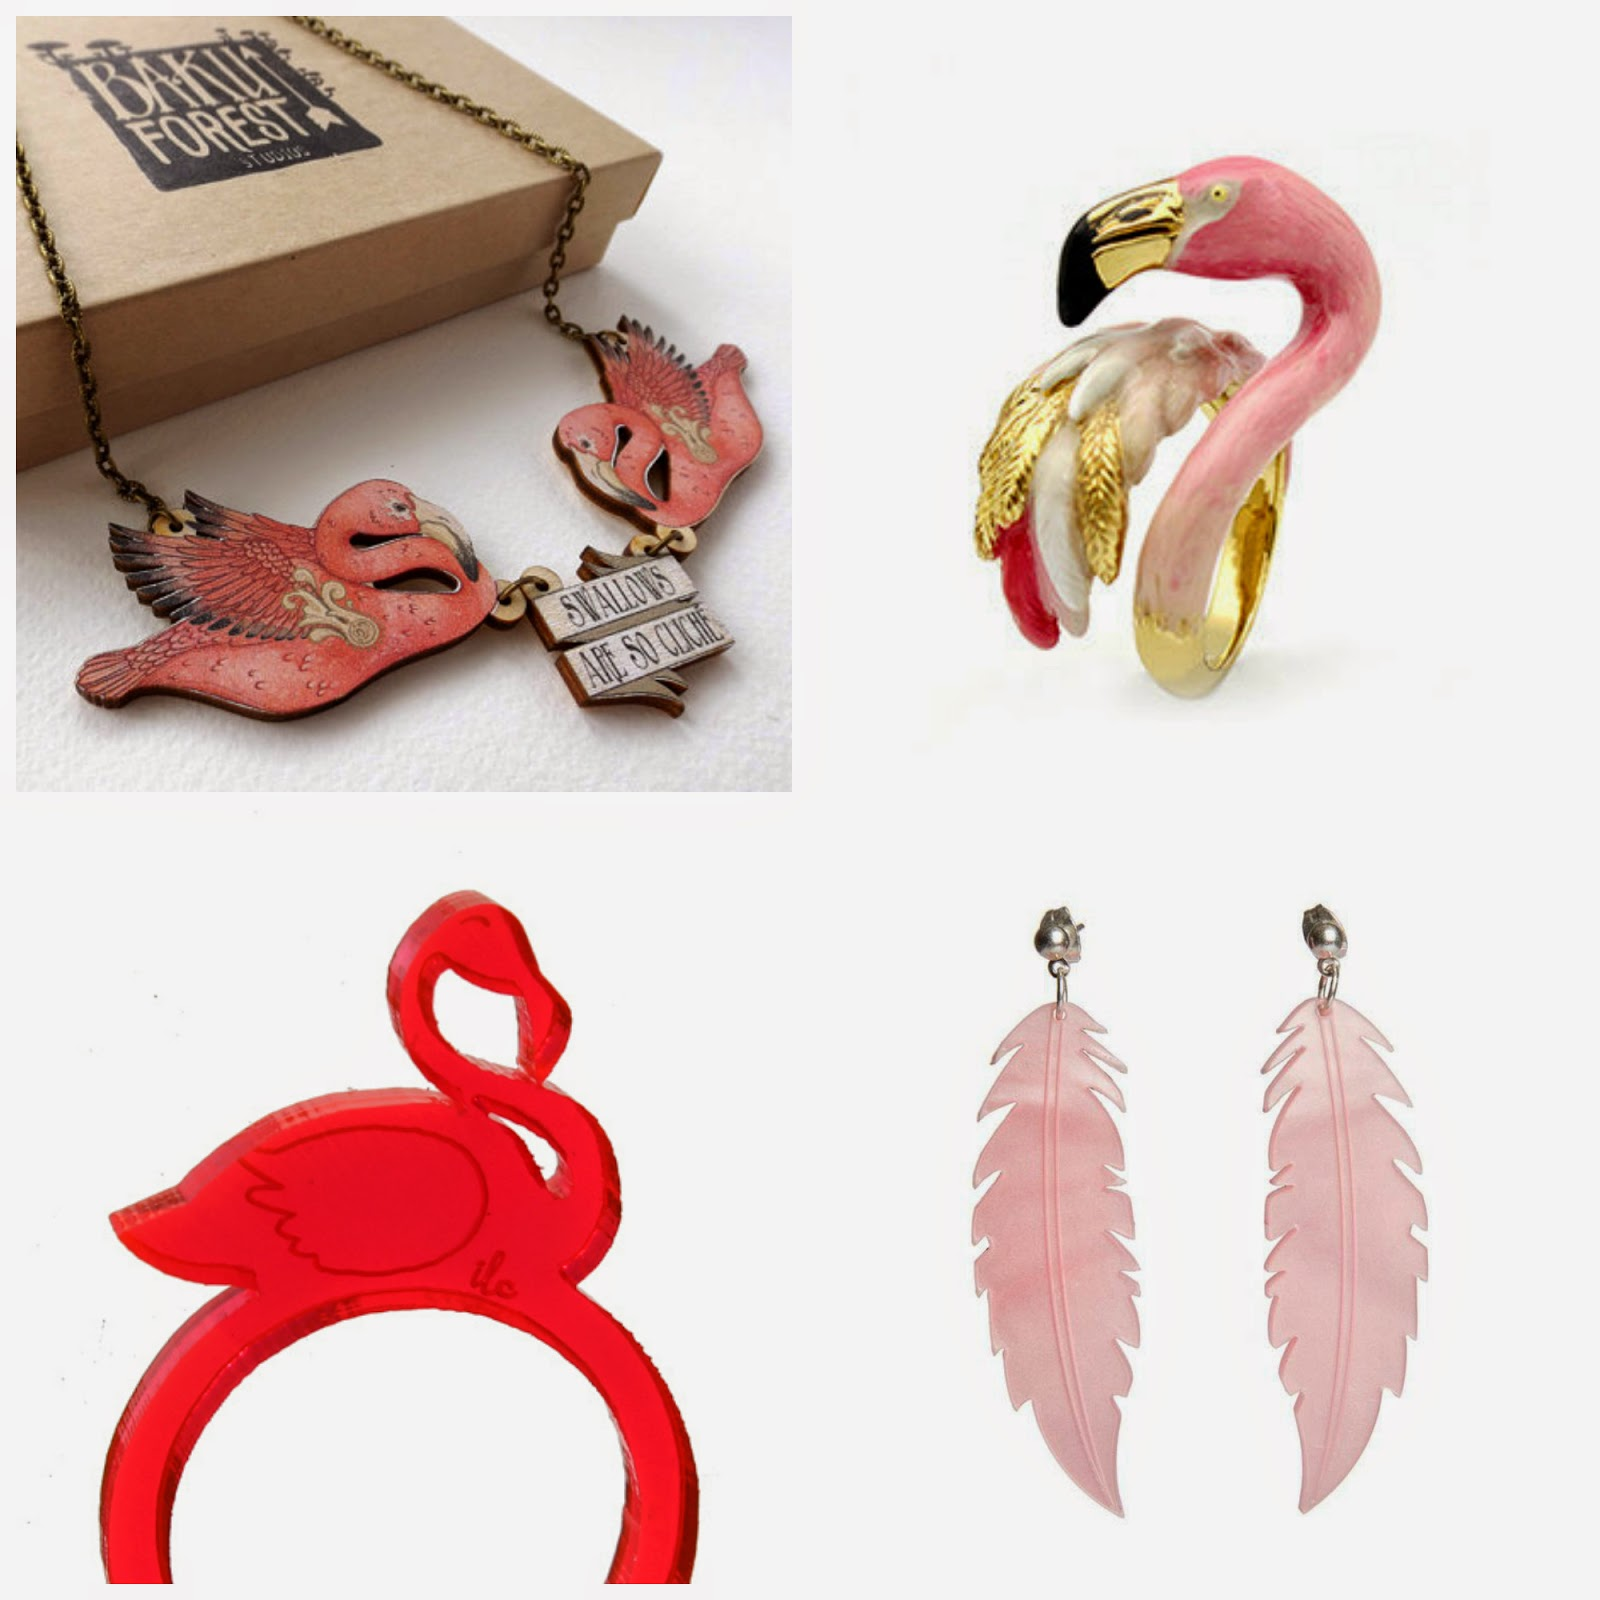 Flamingo jewellery, flamingo themed jewellery, Baku Forest flamingo necklace, swallows are cliche necklace, I love crafty flamingo ring, Sugar and Vice flamingo earrings